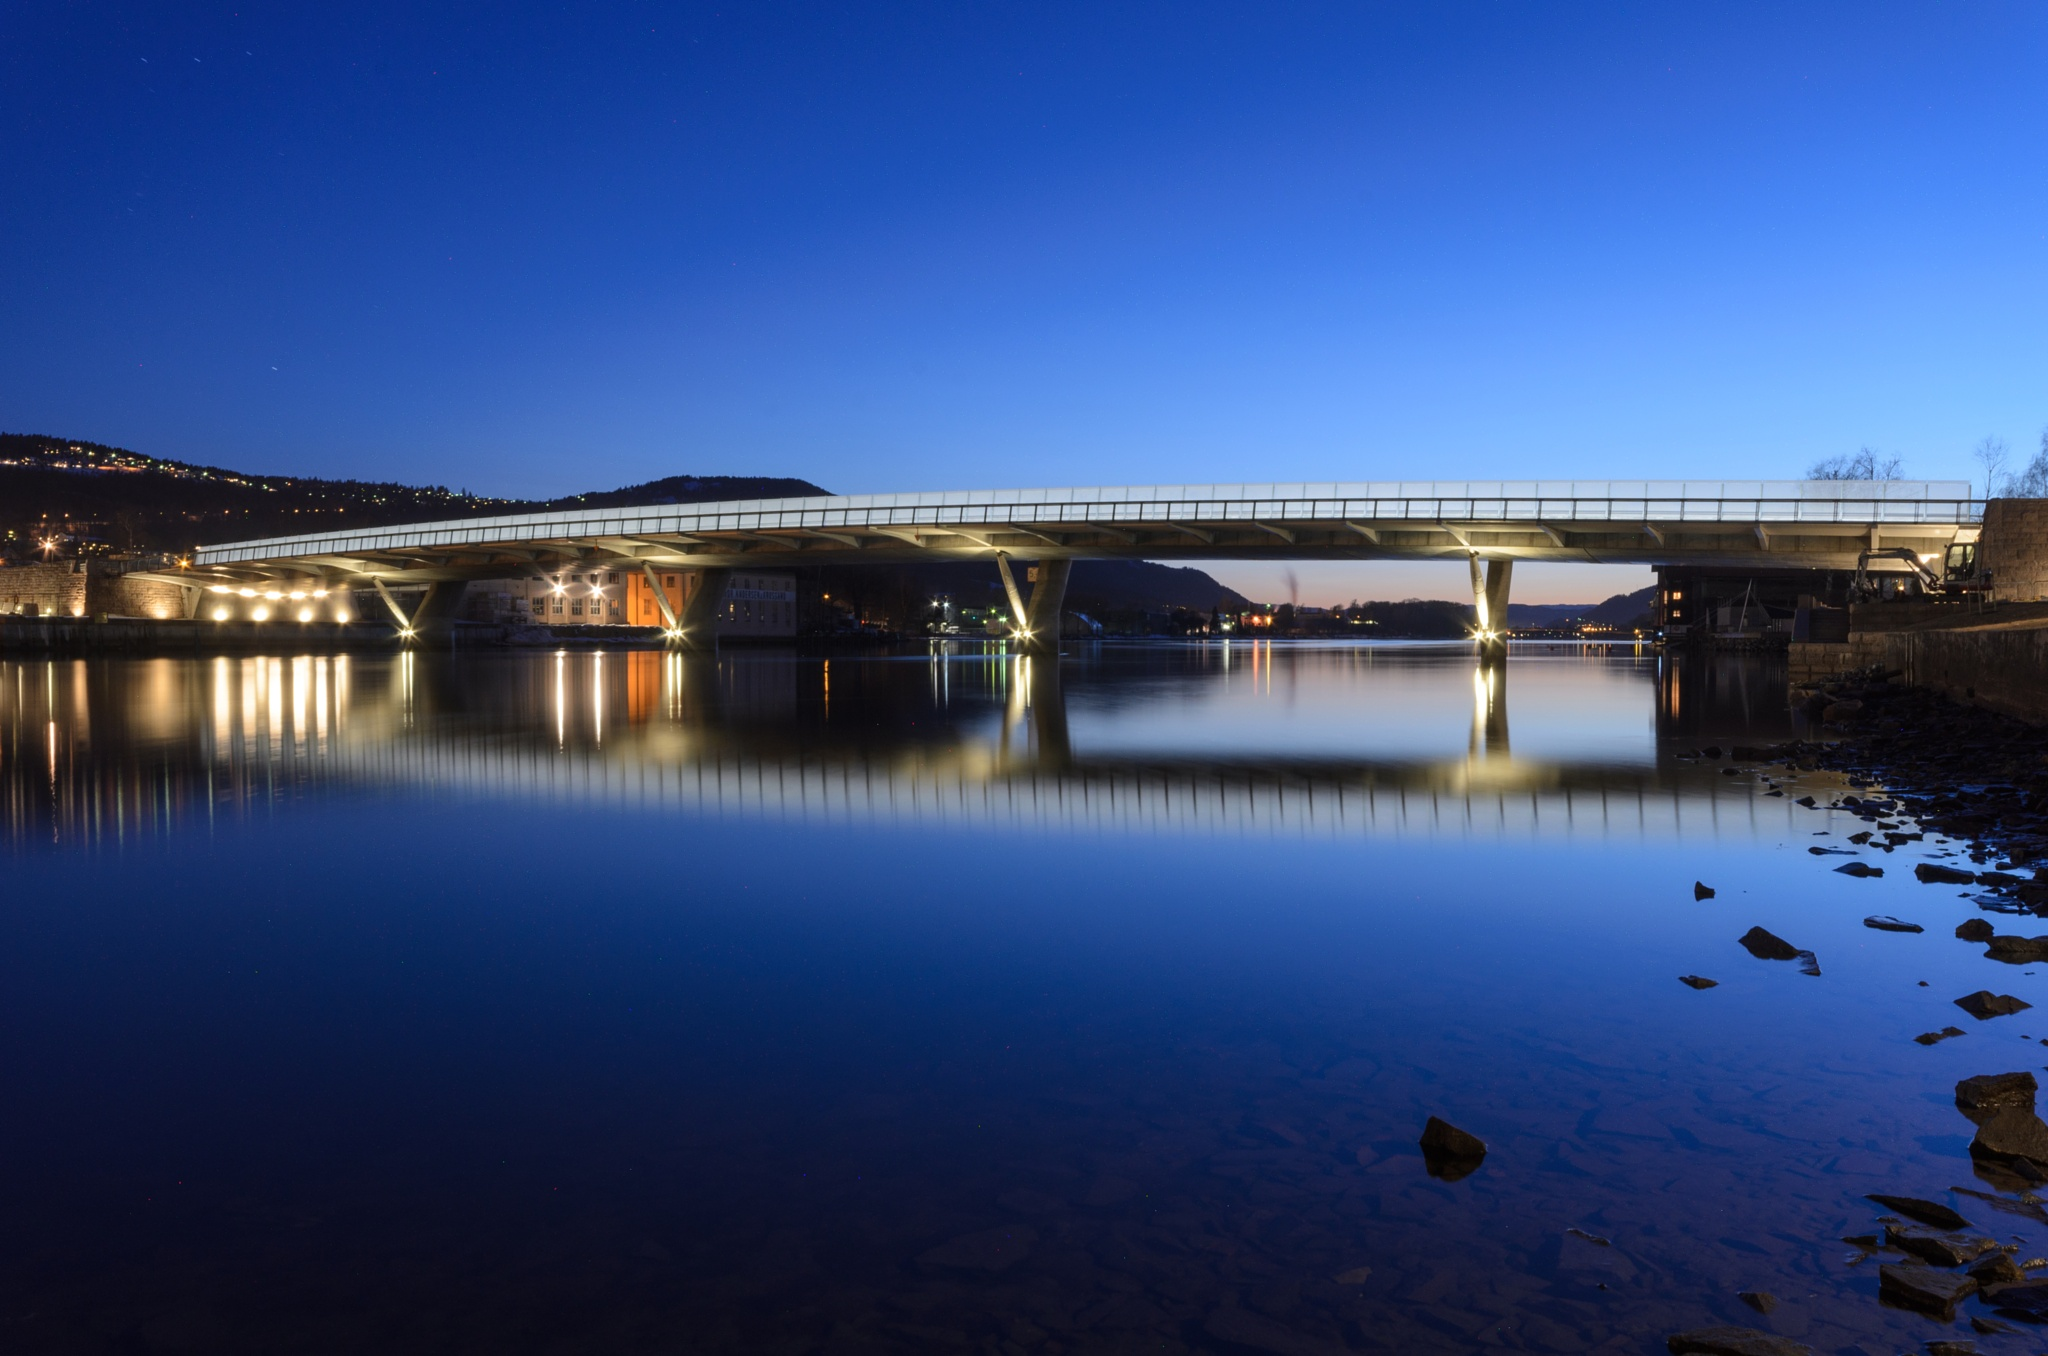 Blue hour over Drammen by Knut Arne Gjertsen